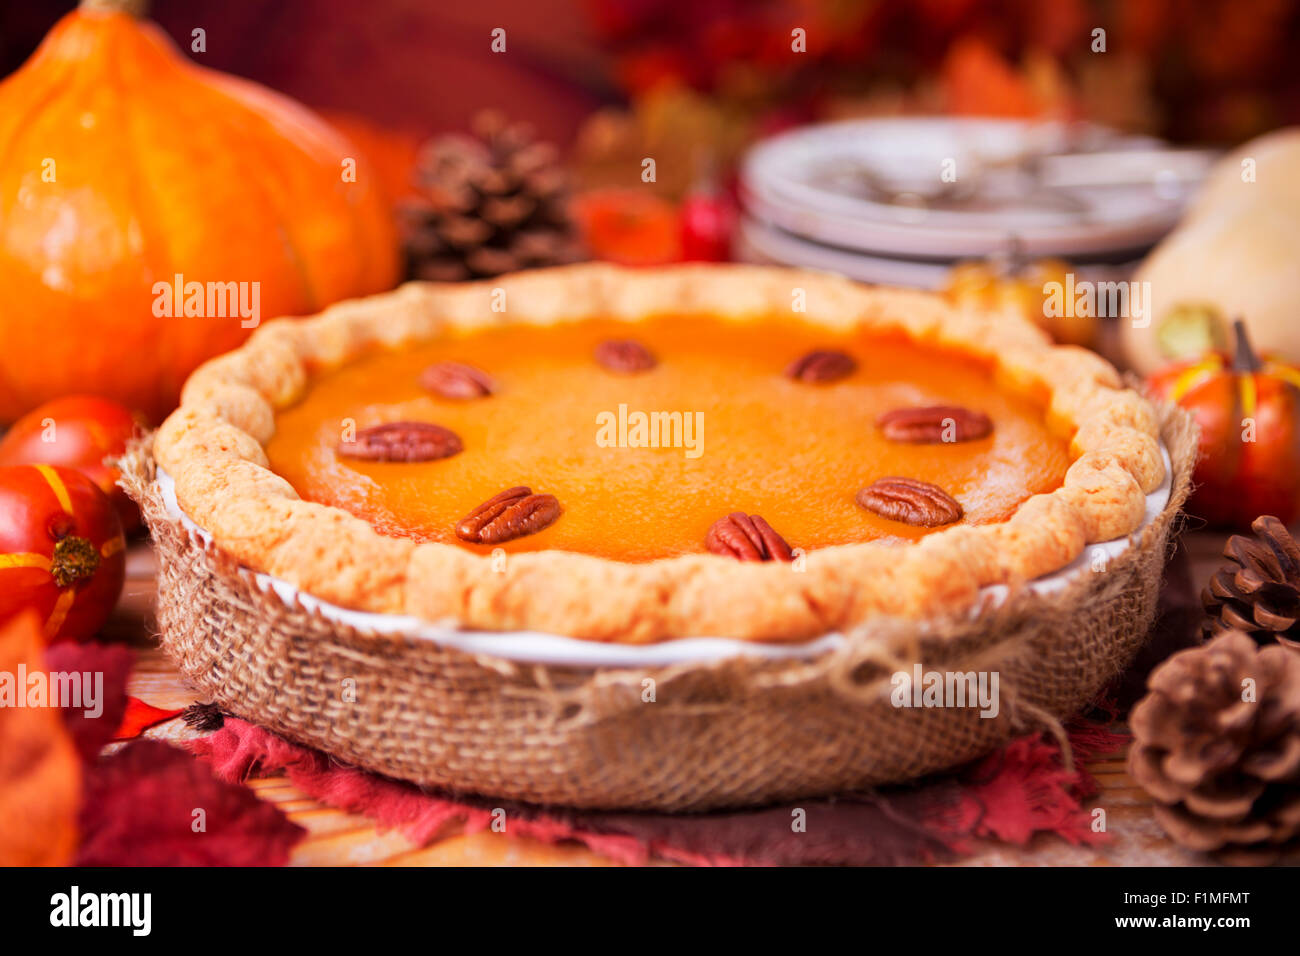 A delicious homemade pumpkin pie on a rustic table with autumn decorations. - Stock Image